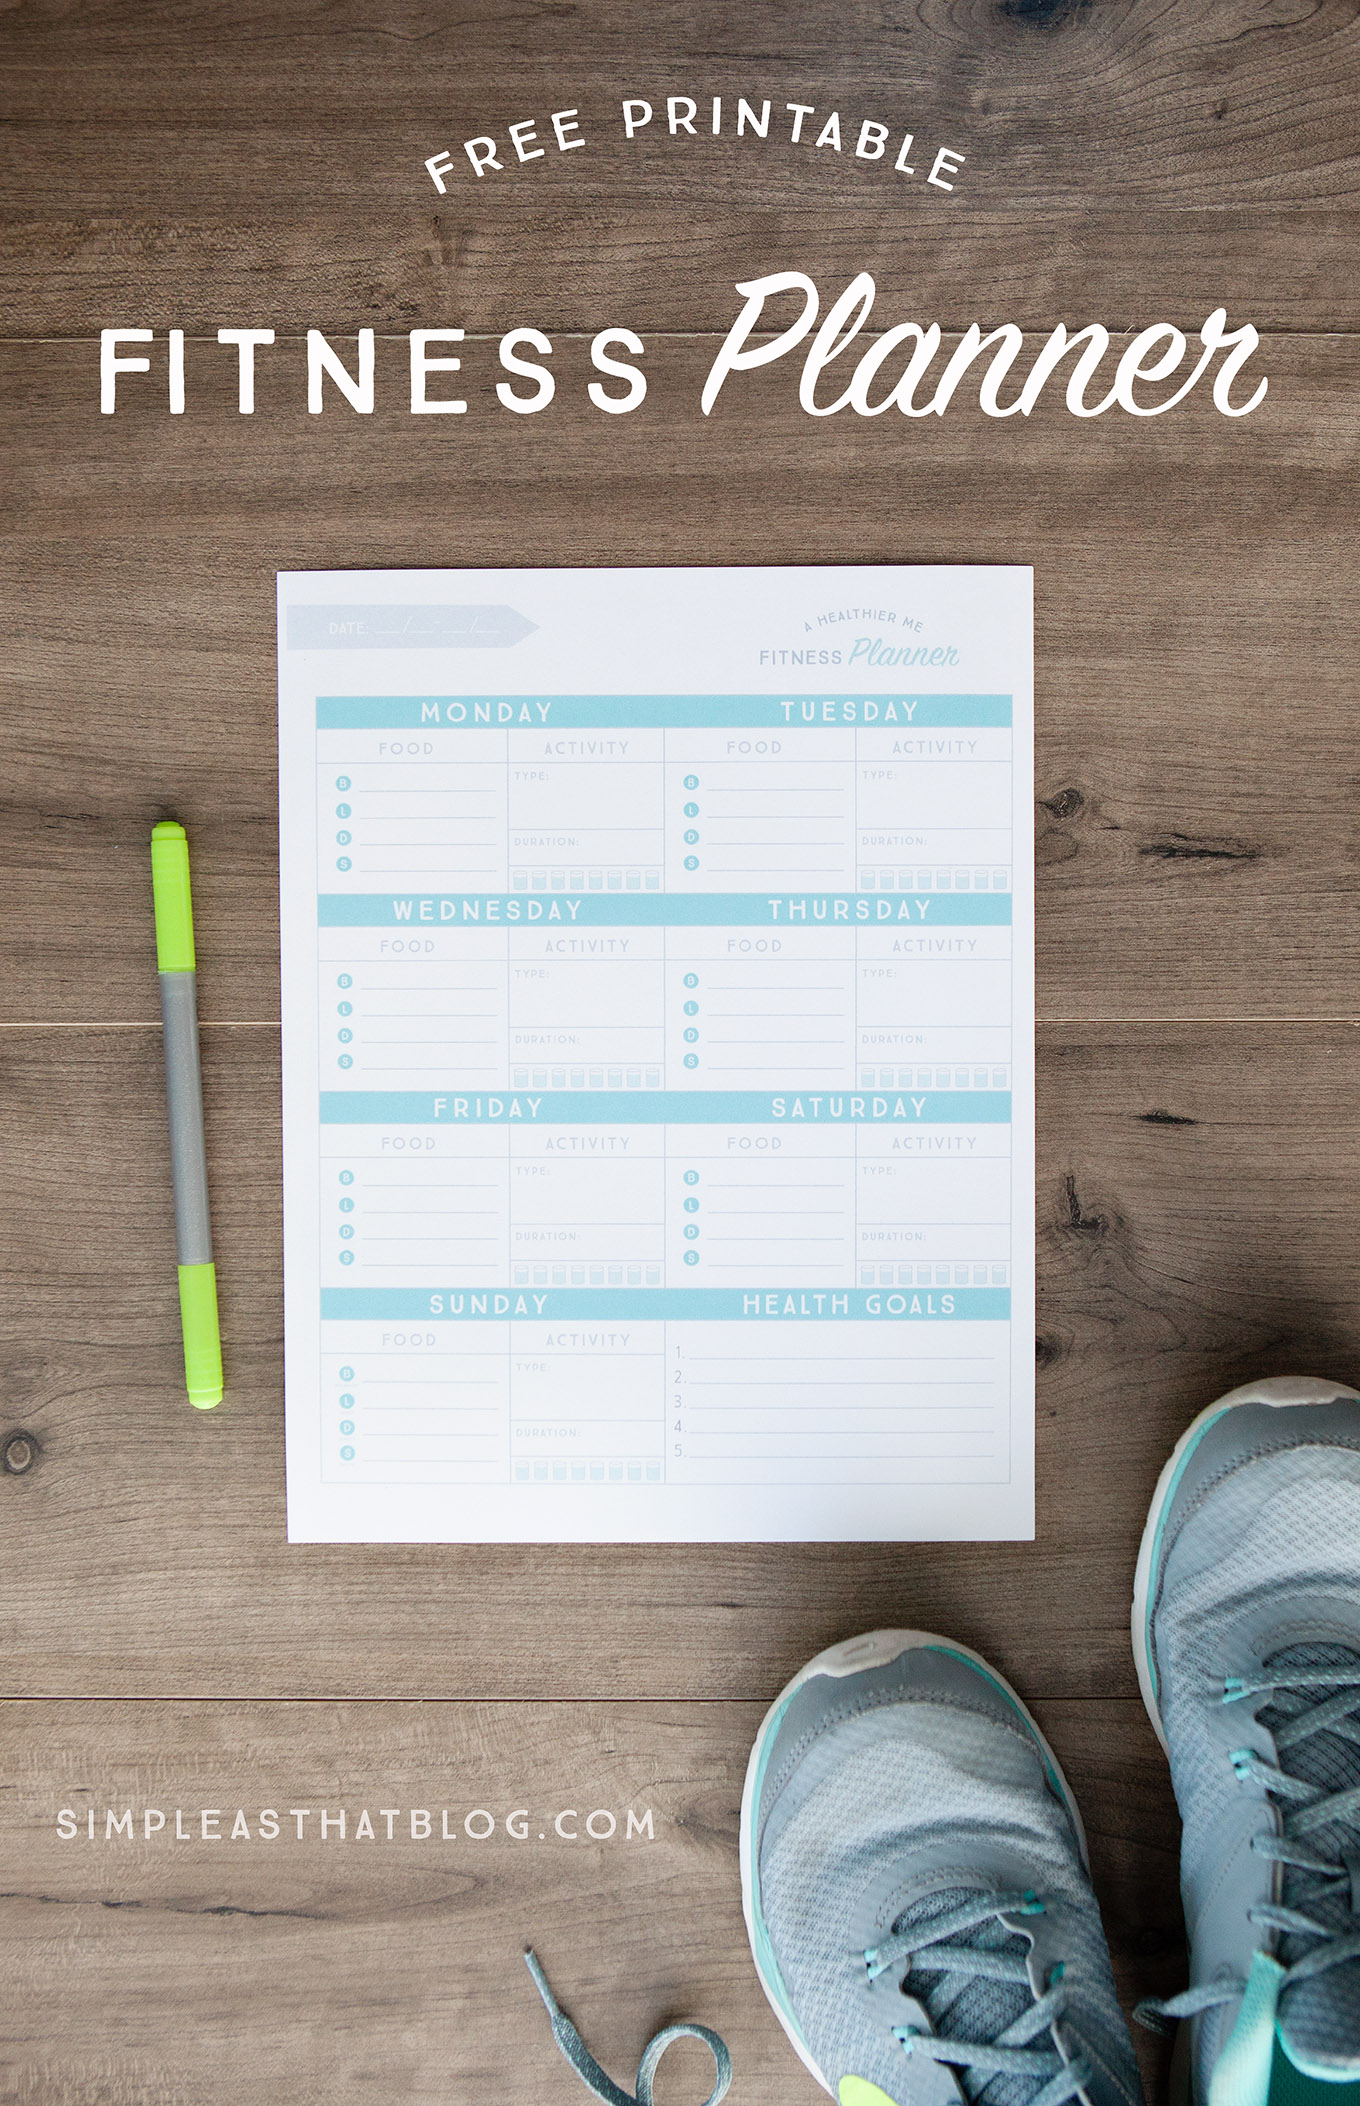 image relating to Fitness Planner Printable named Totally free Printable Health and fitness Planner